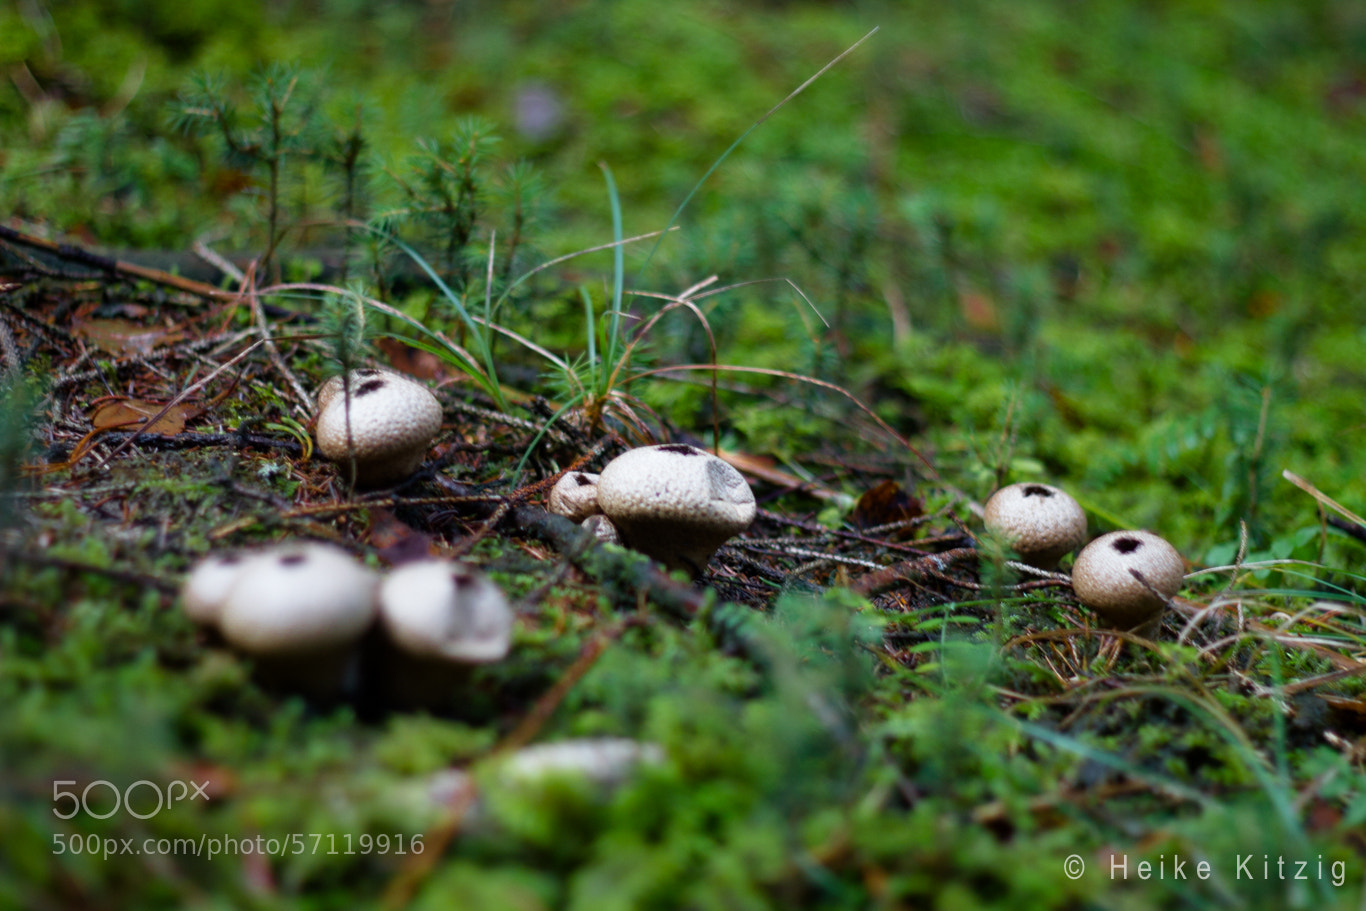 Photograph Mushrooms by Heike Kitzig on 500px